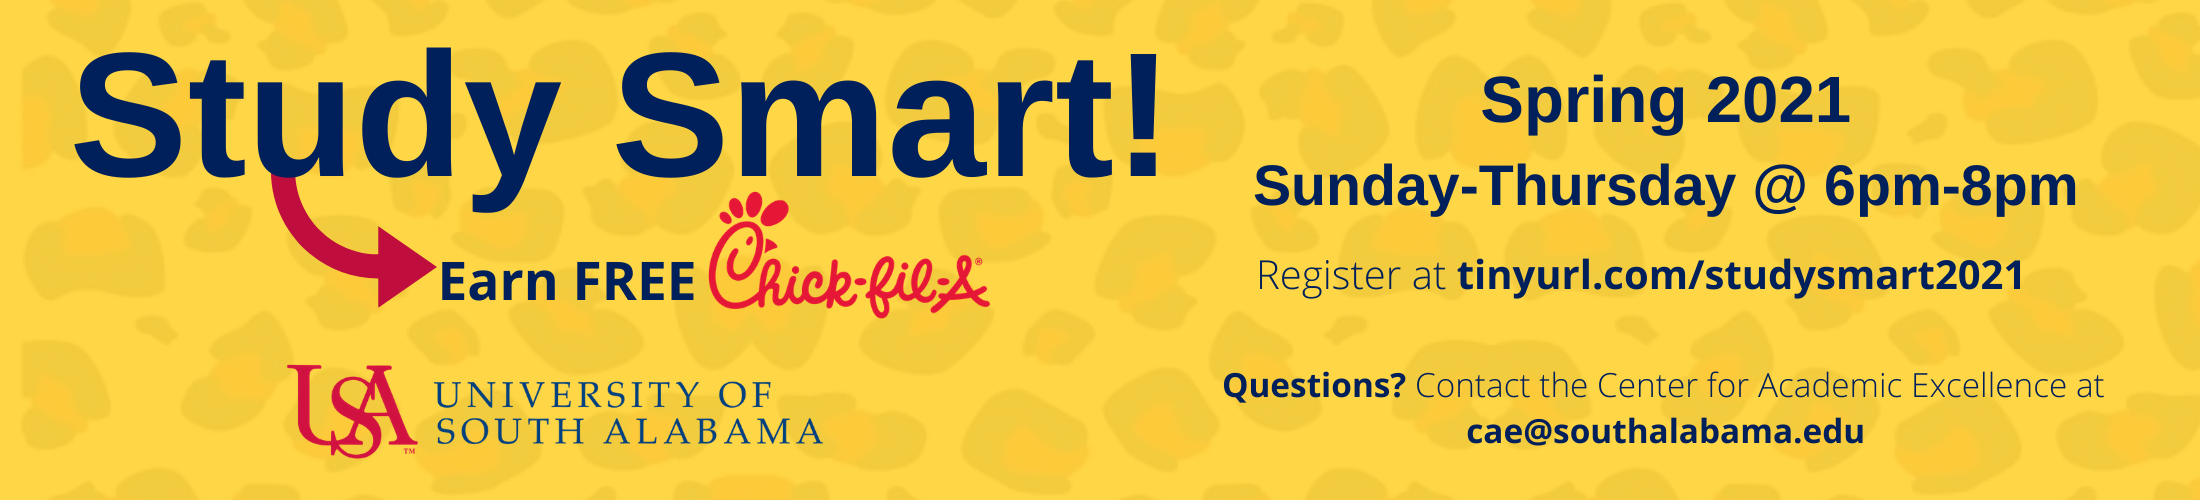 Study Smart Earn free Chick fil a Spring 2021 Sunday-Thursday @ 6pm-8pm Register at tinyurl.com/studysmart2021 Questions? Contact the Center for Academic Excellence at cae@southalabama.edu